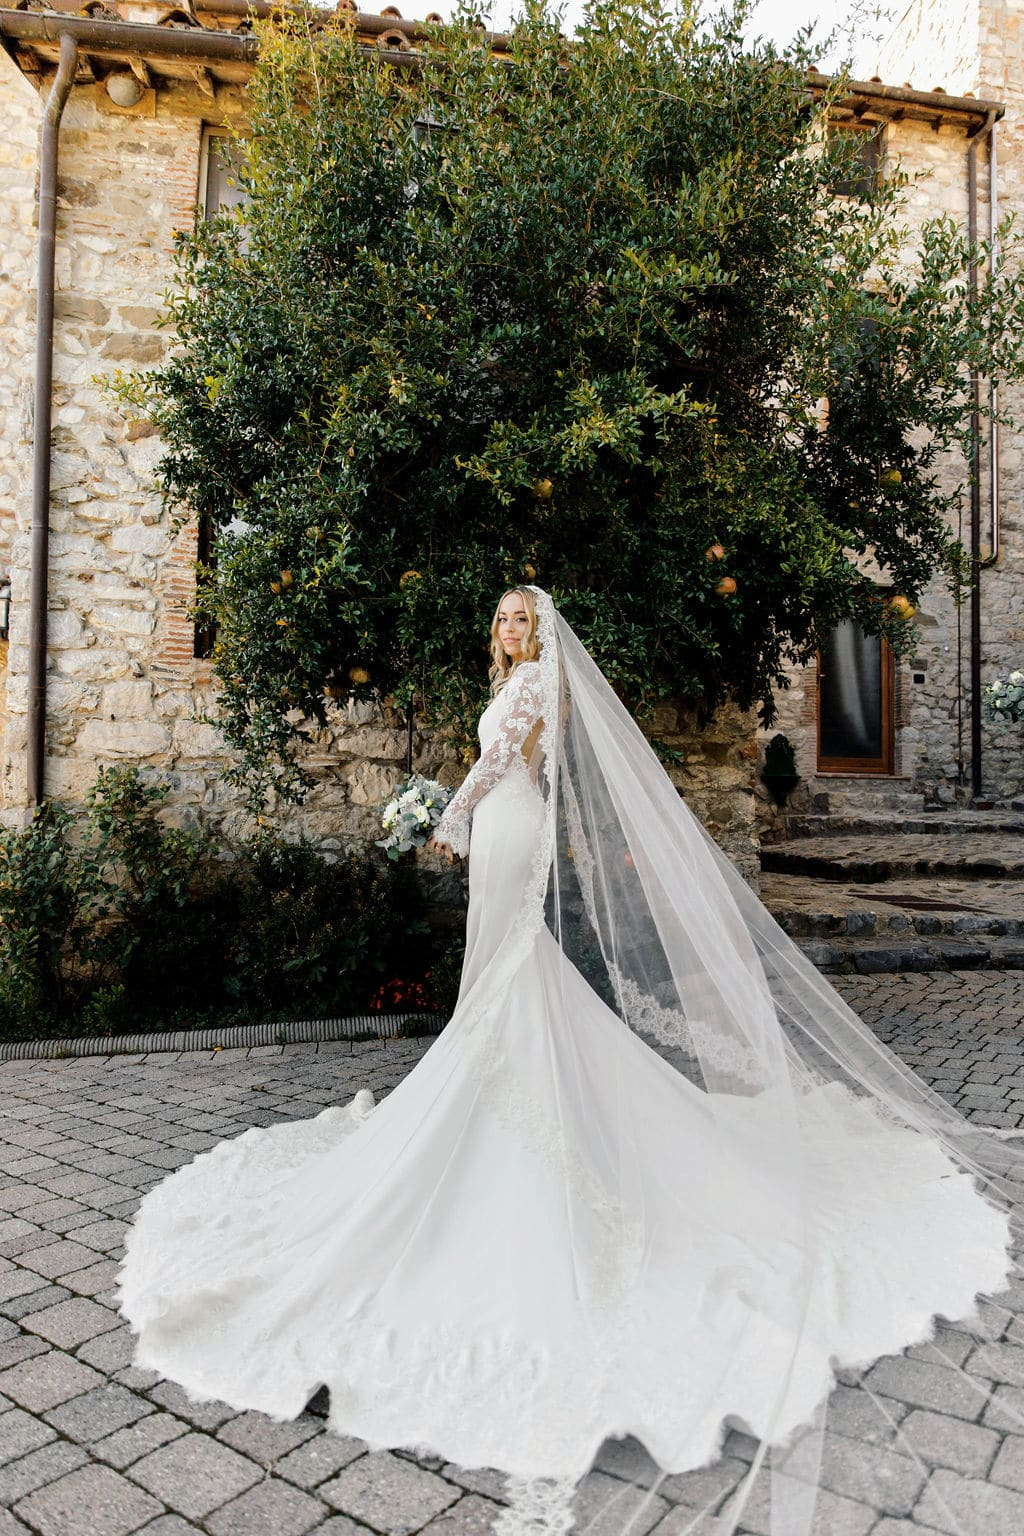 stunning boho bride and wedding gown with long lace veil